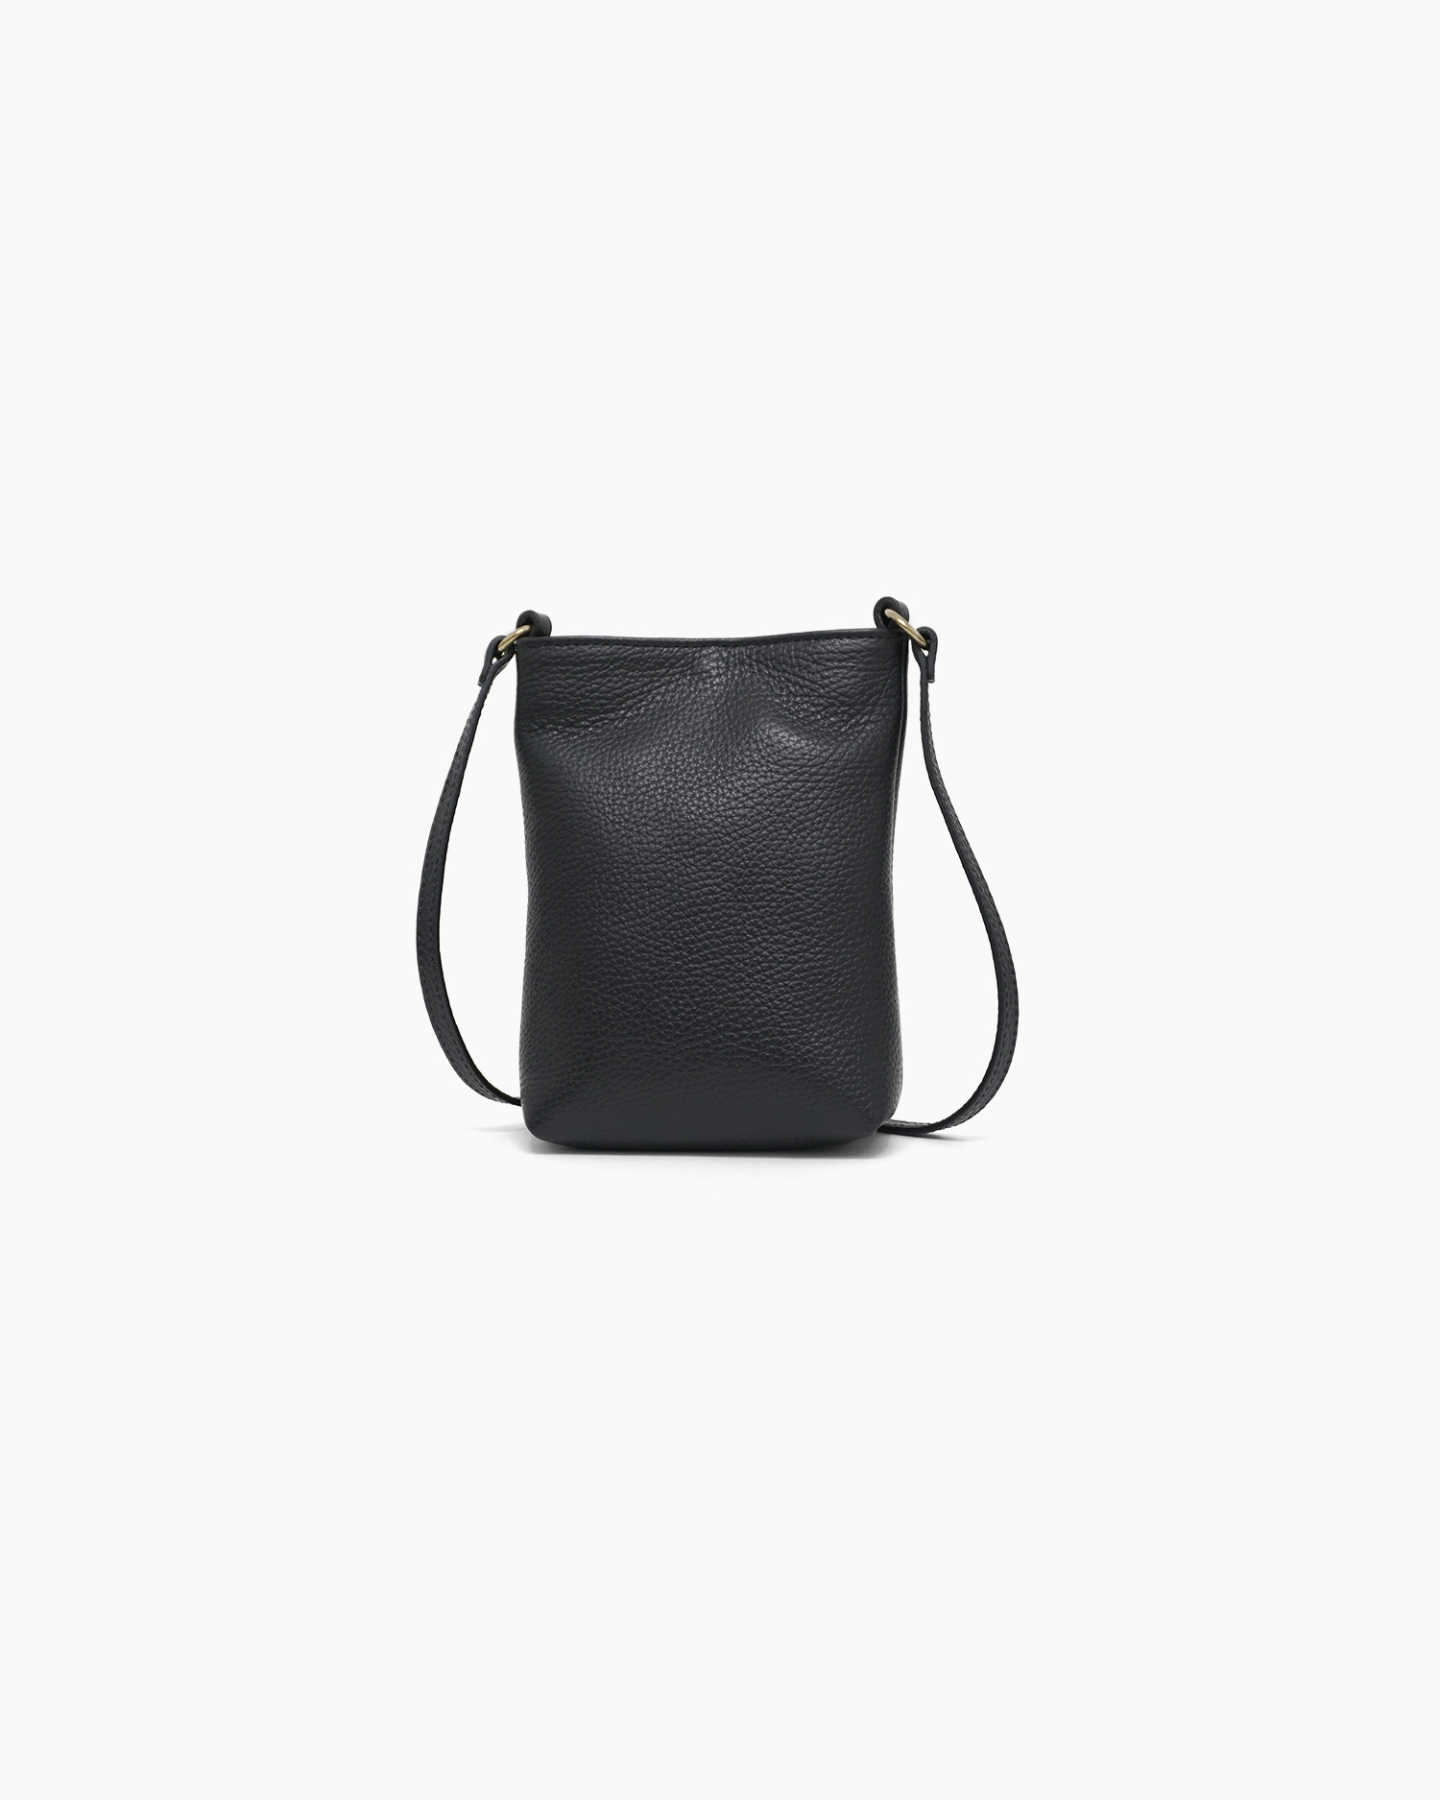 Italian Pebbled Leather Phone Crossbody - Black - 10 - Thumbnail